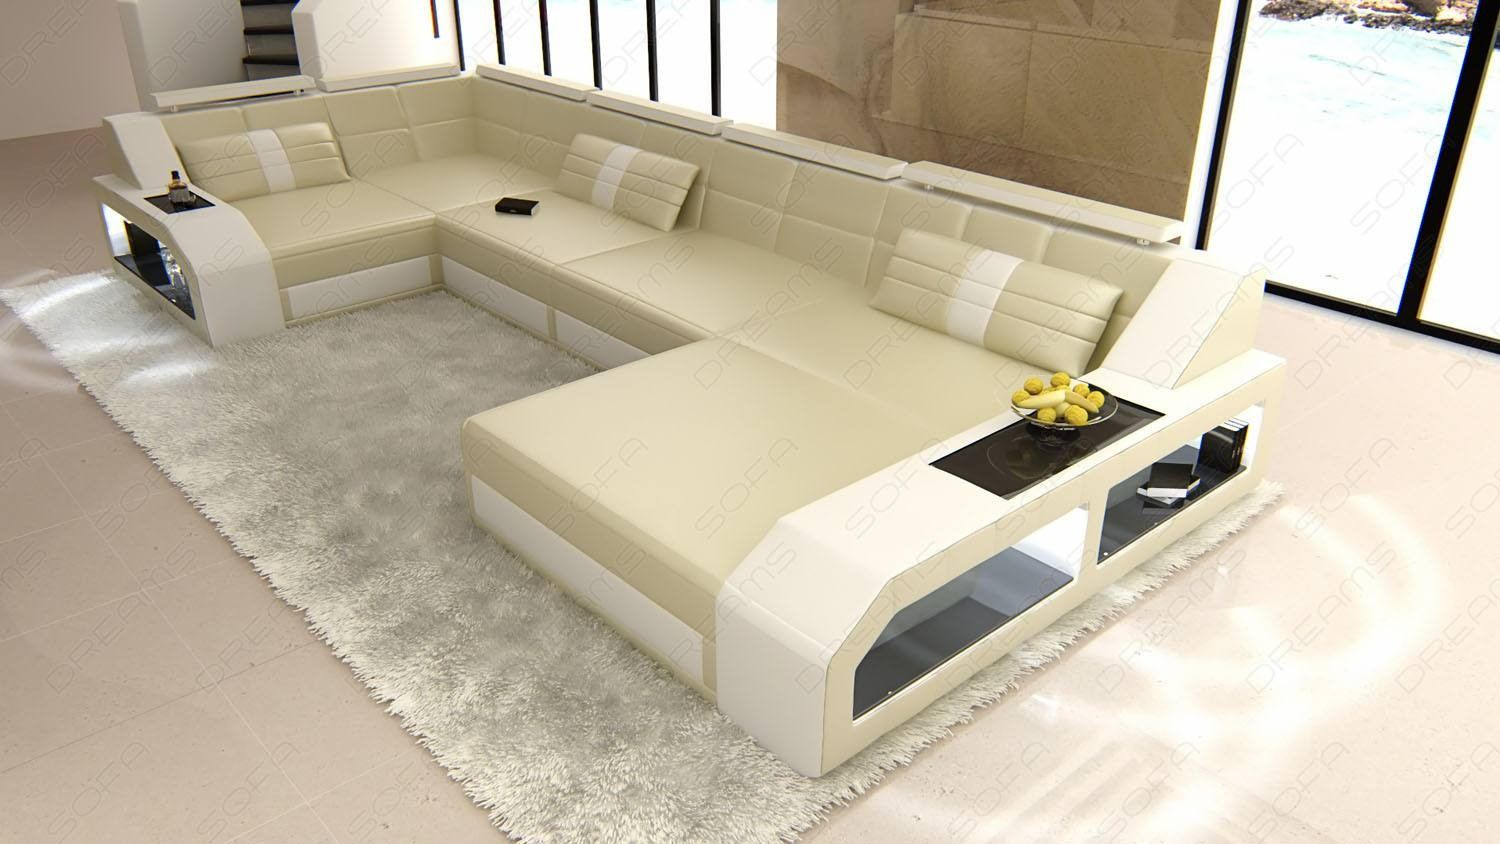 Superieur Sofa Dreams